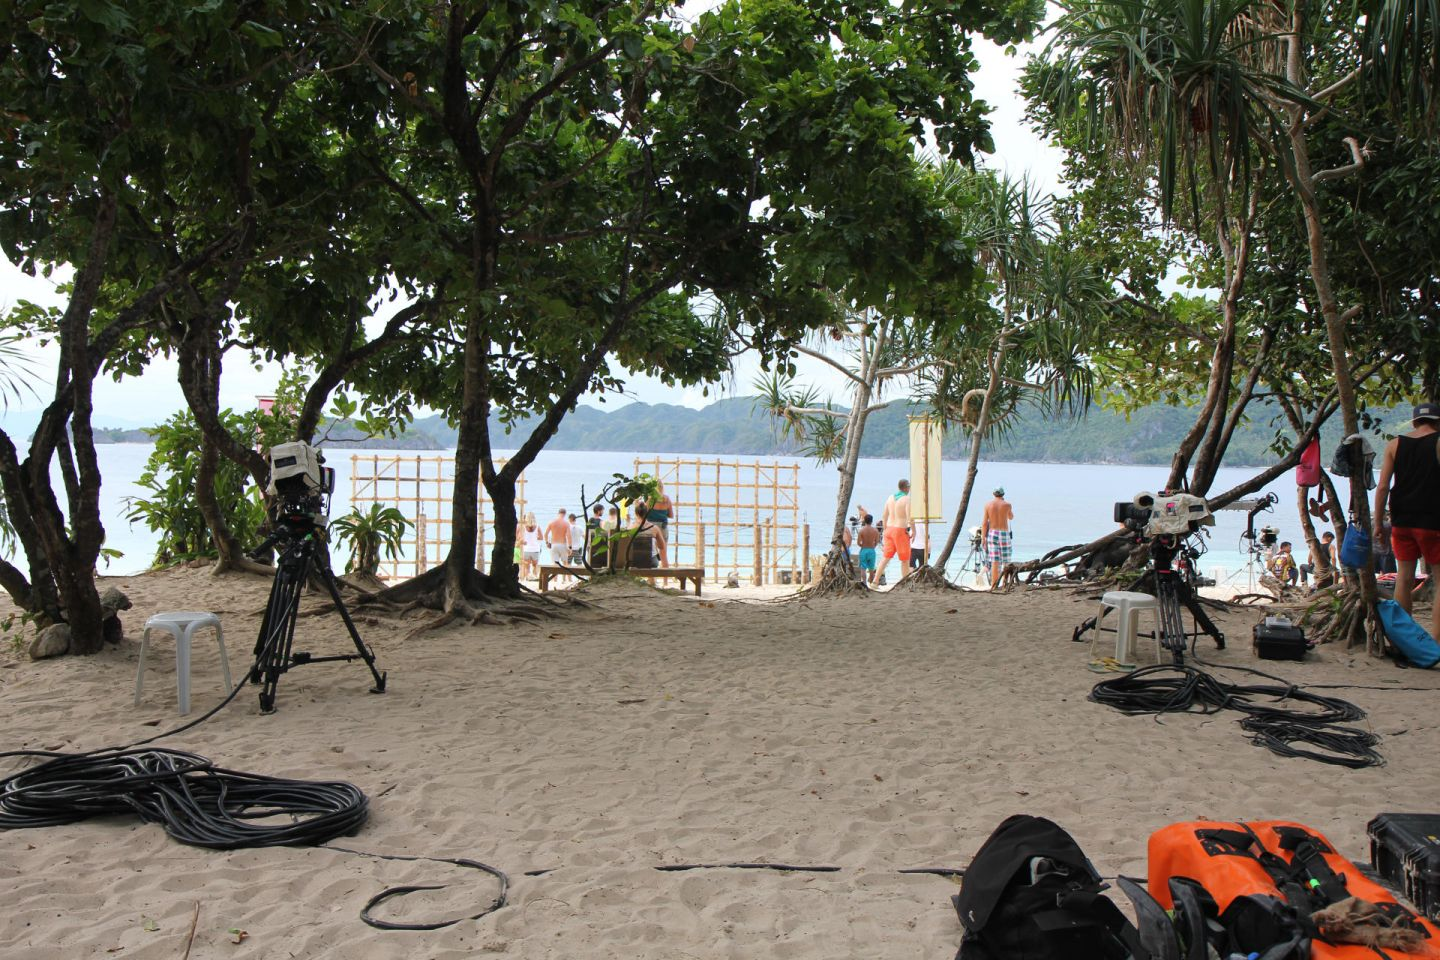 on the set of Survivor in the Philipines